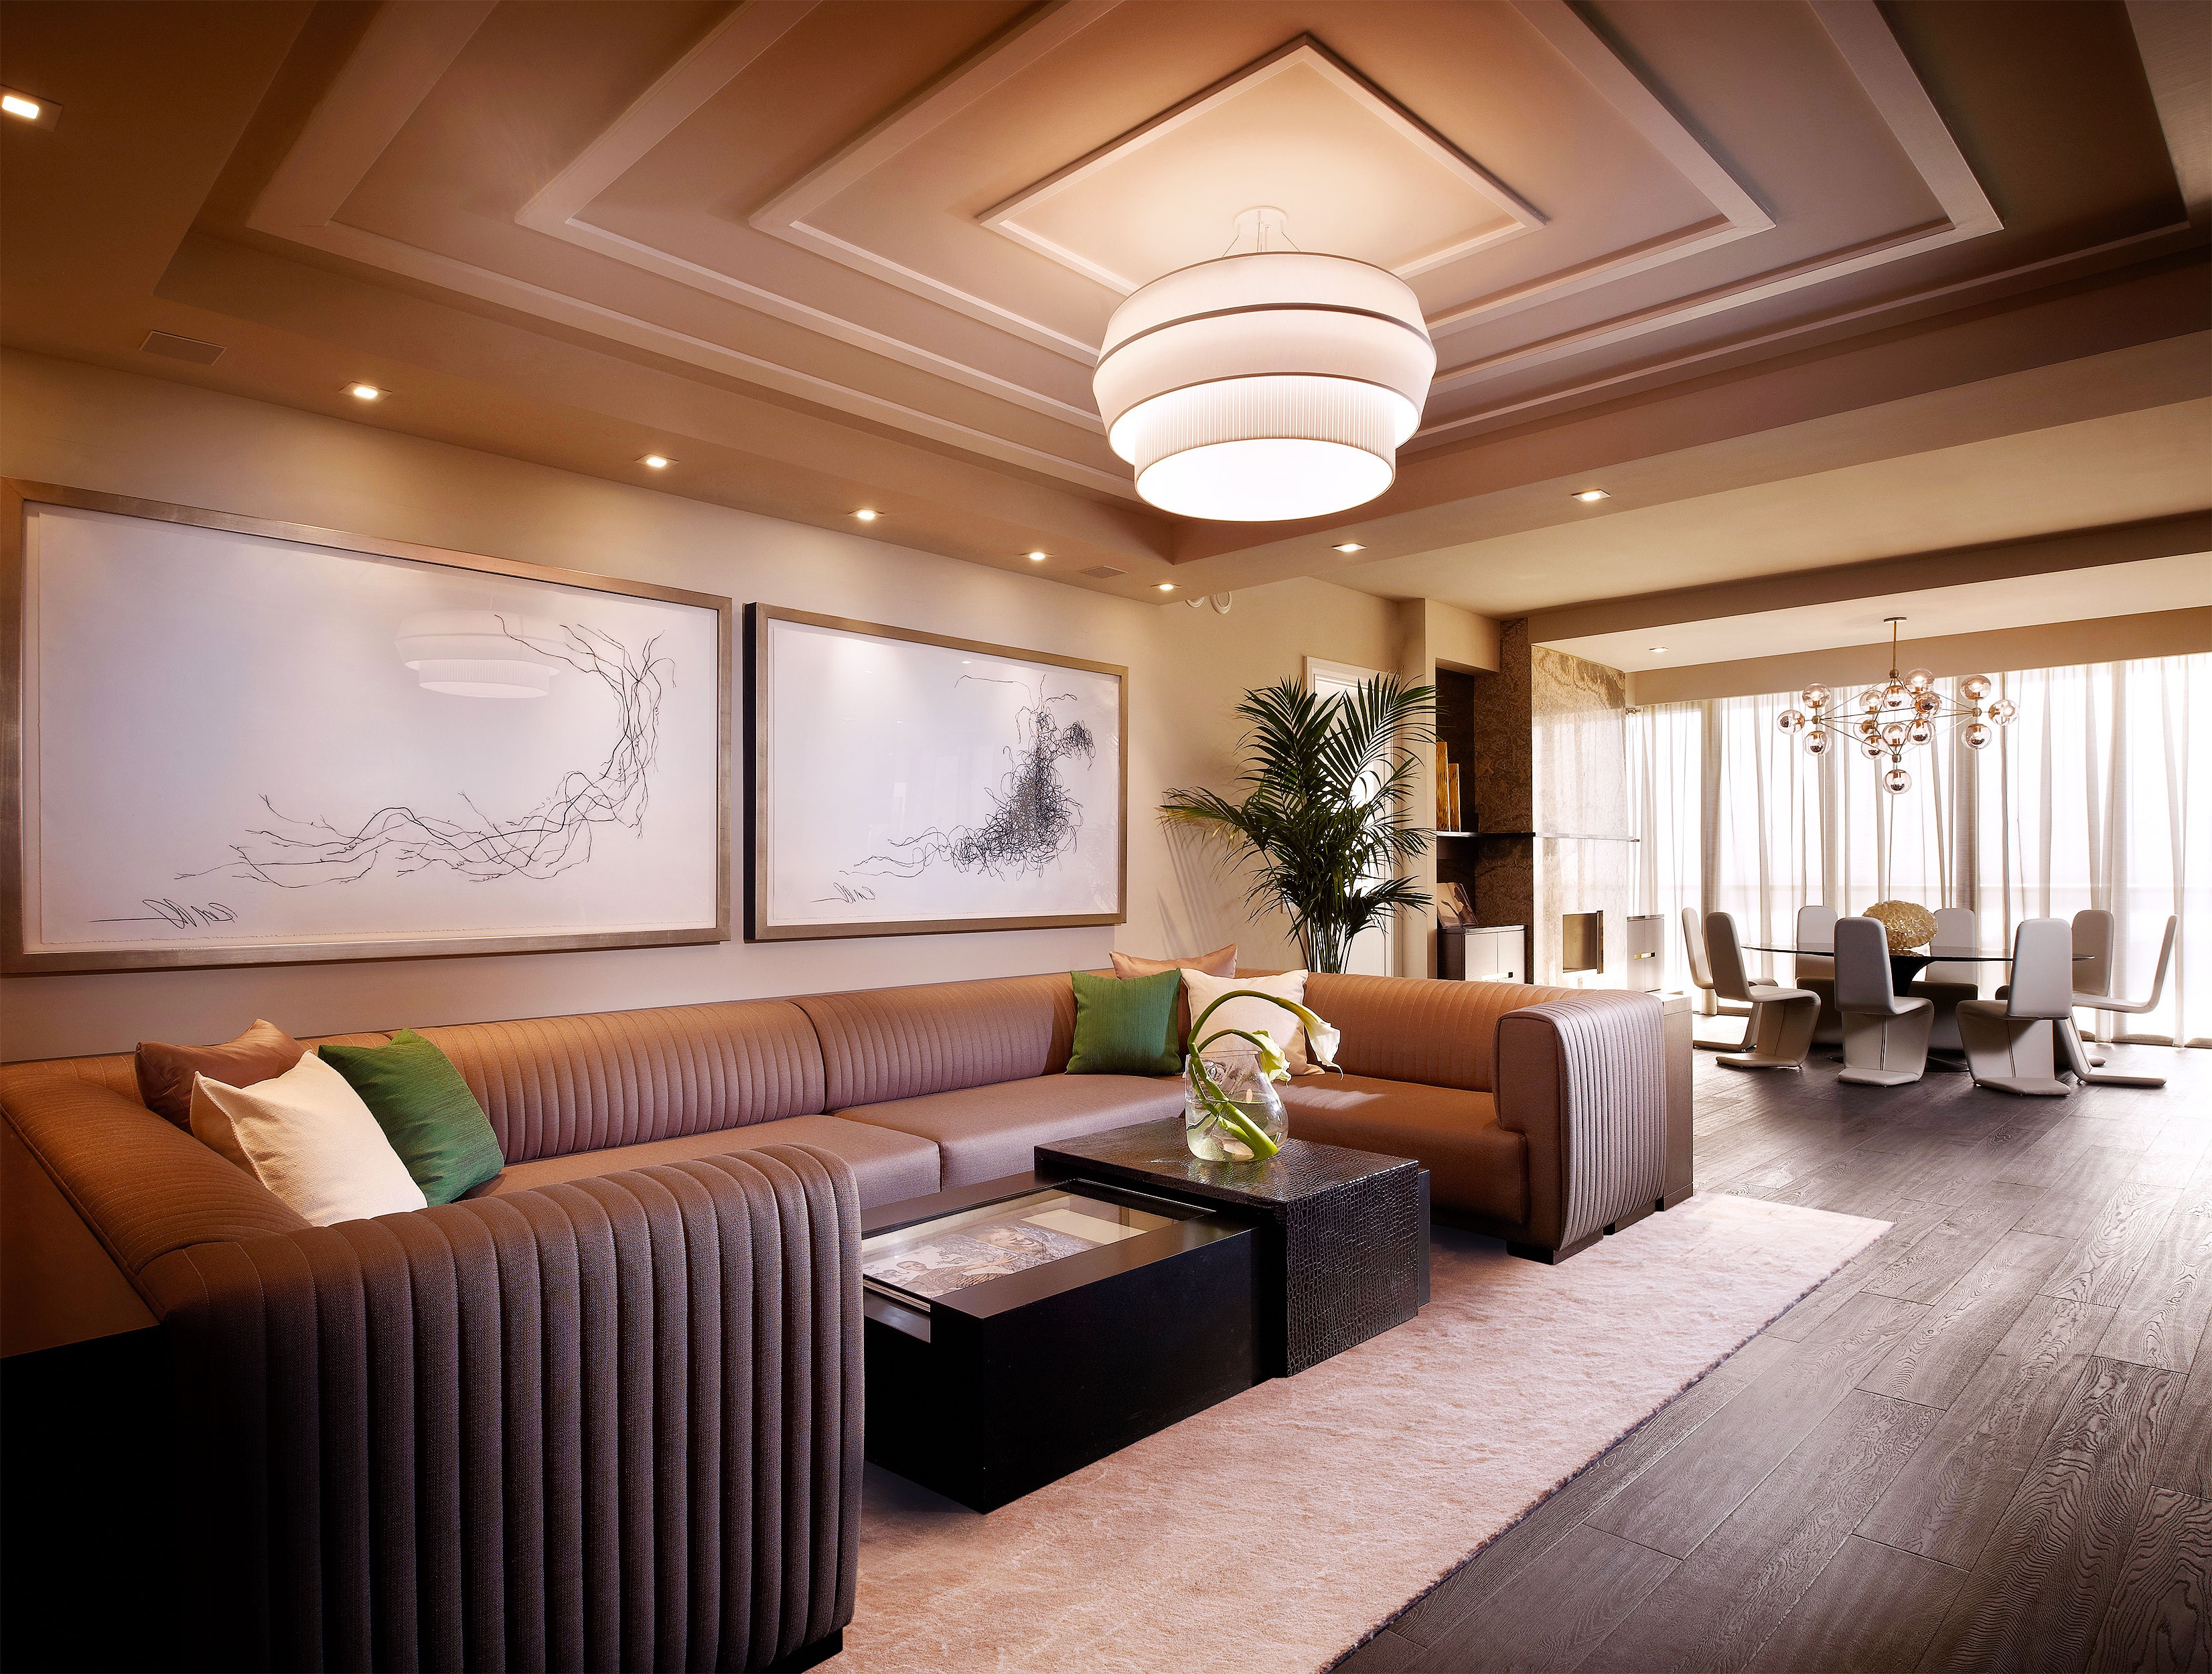 Contemporary Luxury Living Room With Unique Geometric Molding Ceiling (Image 2 of 32)